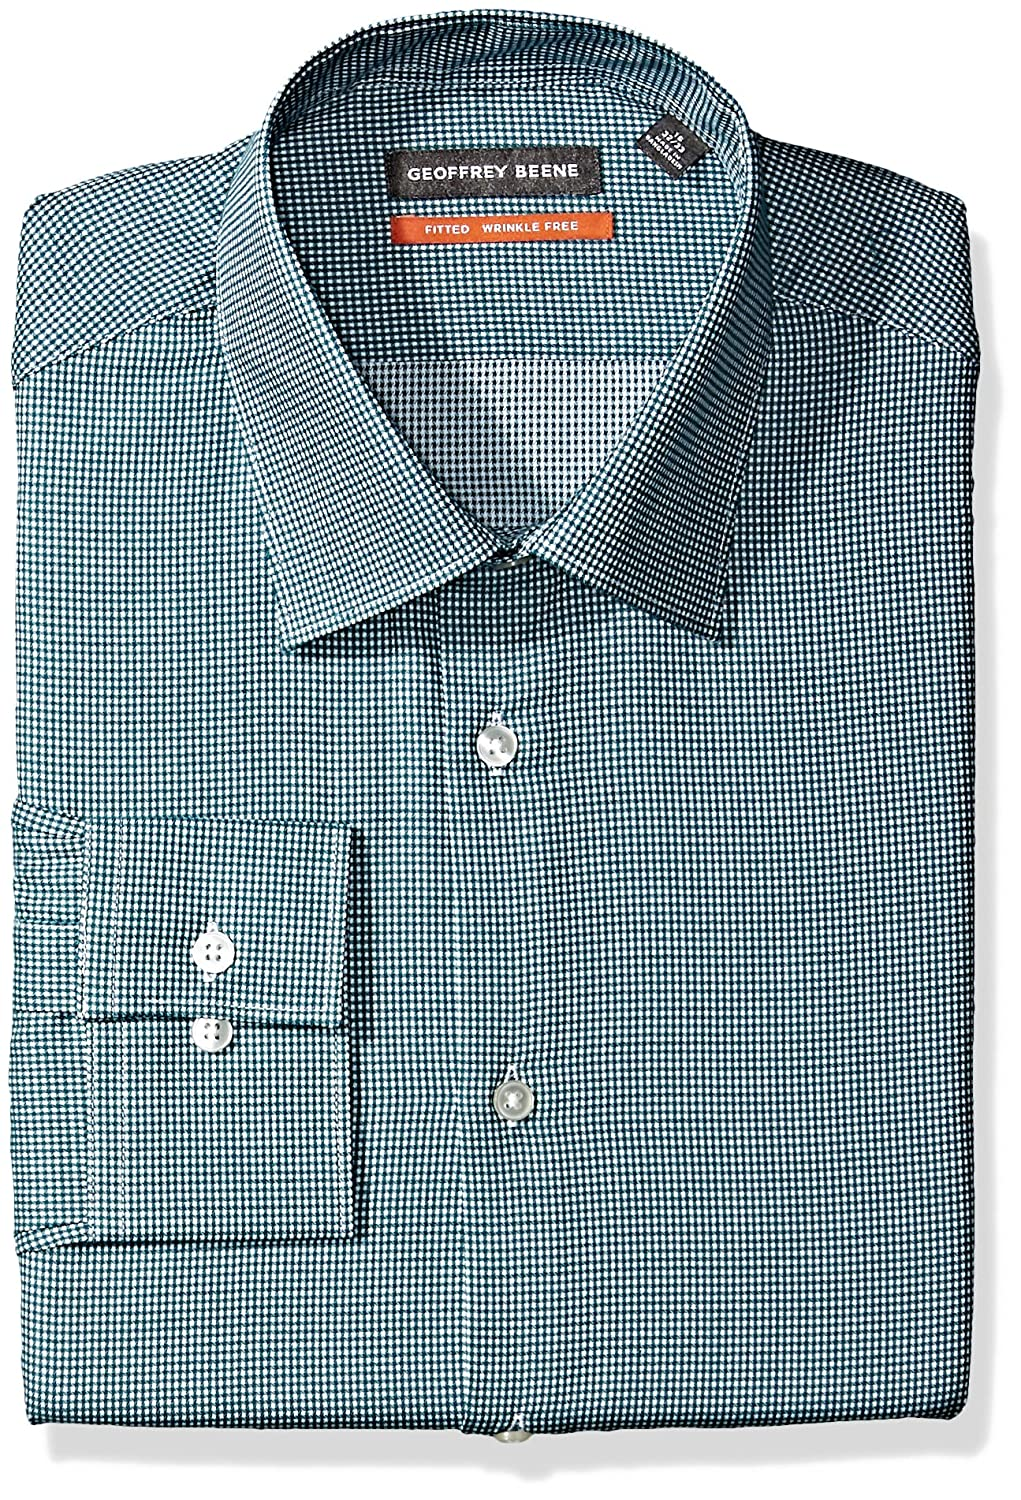 Geoffrey Beene Mens Fitted Check Spread Collar Dress Shirt At